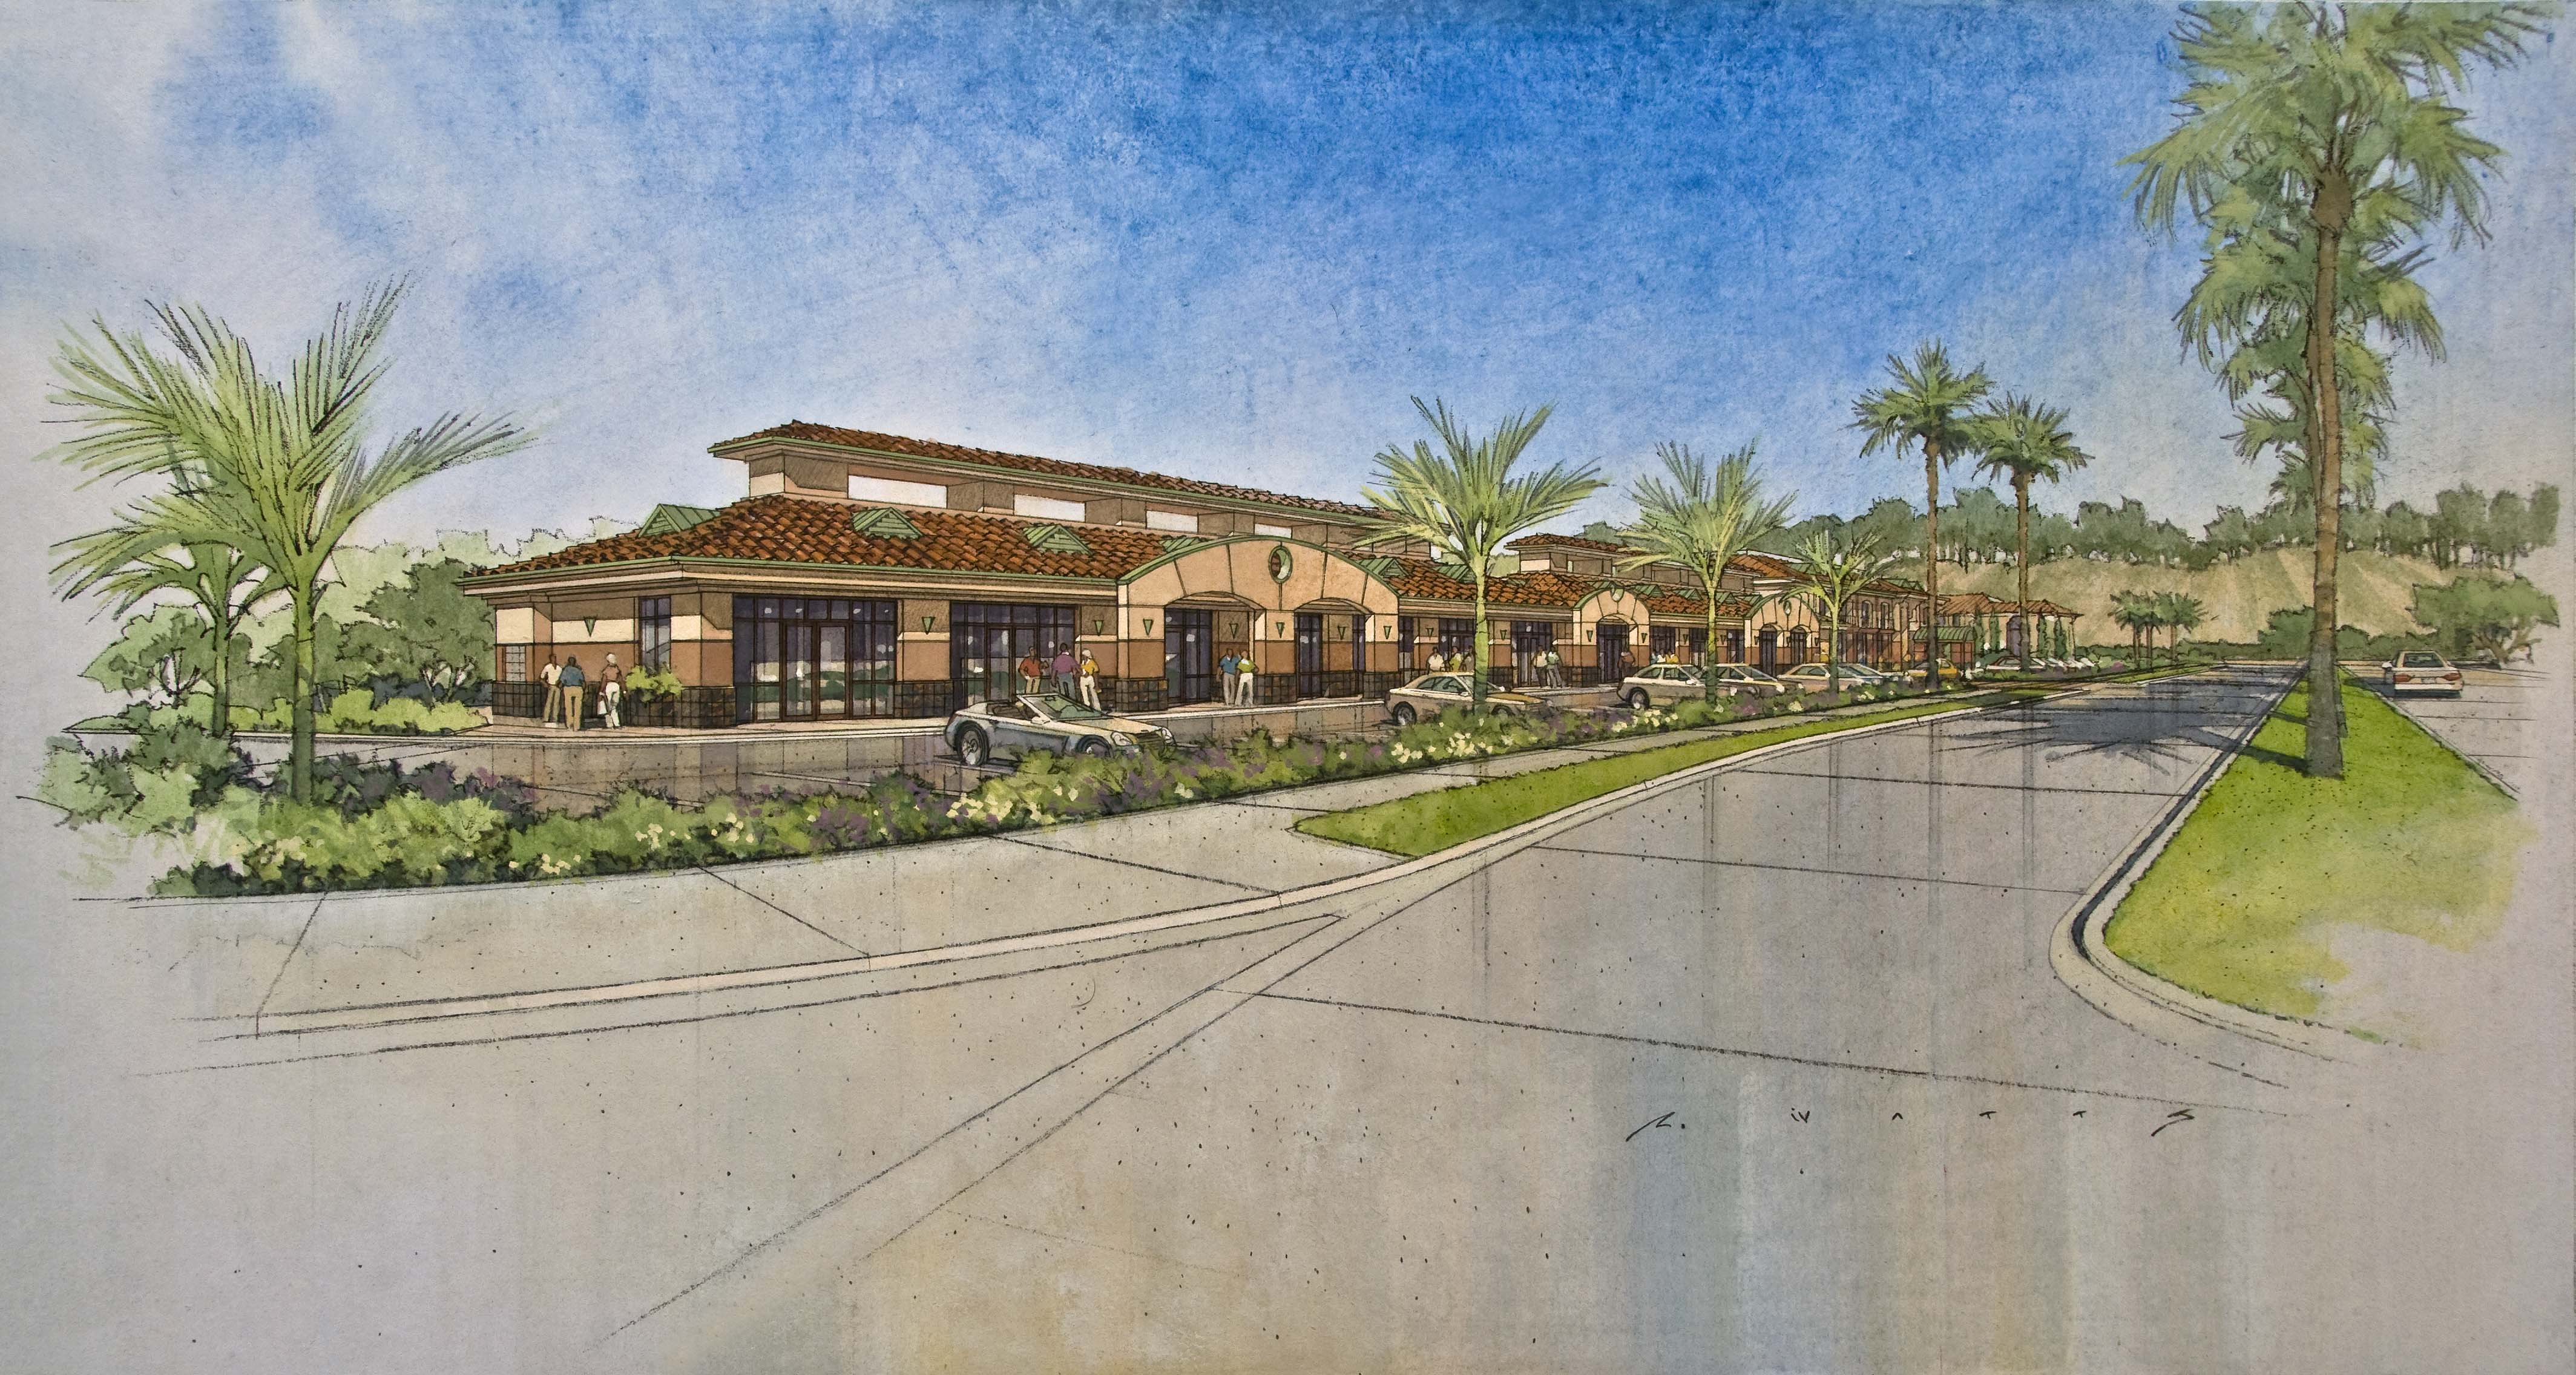 Rendering of the planned retail building.